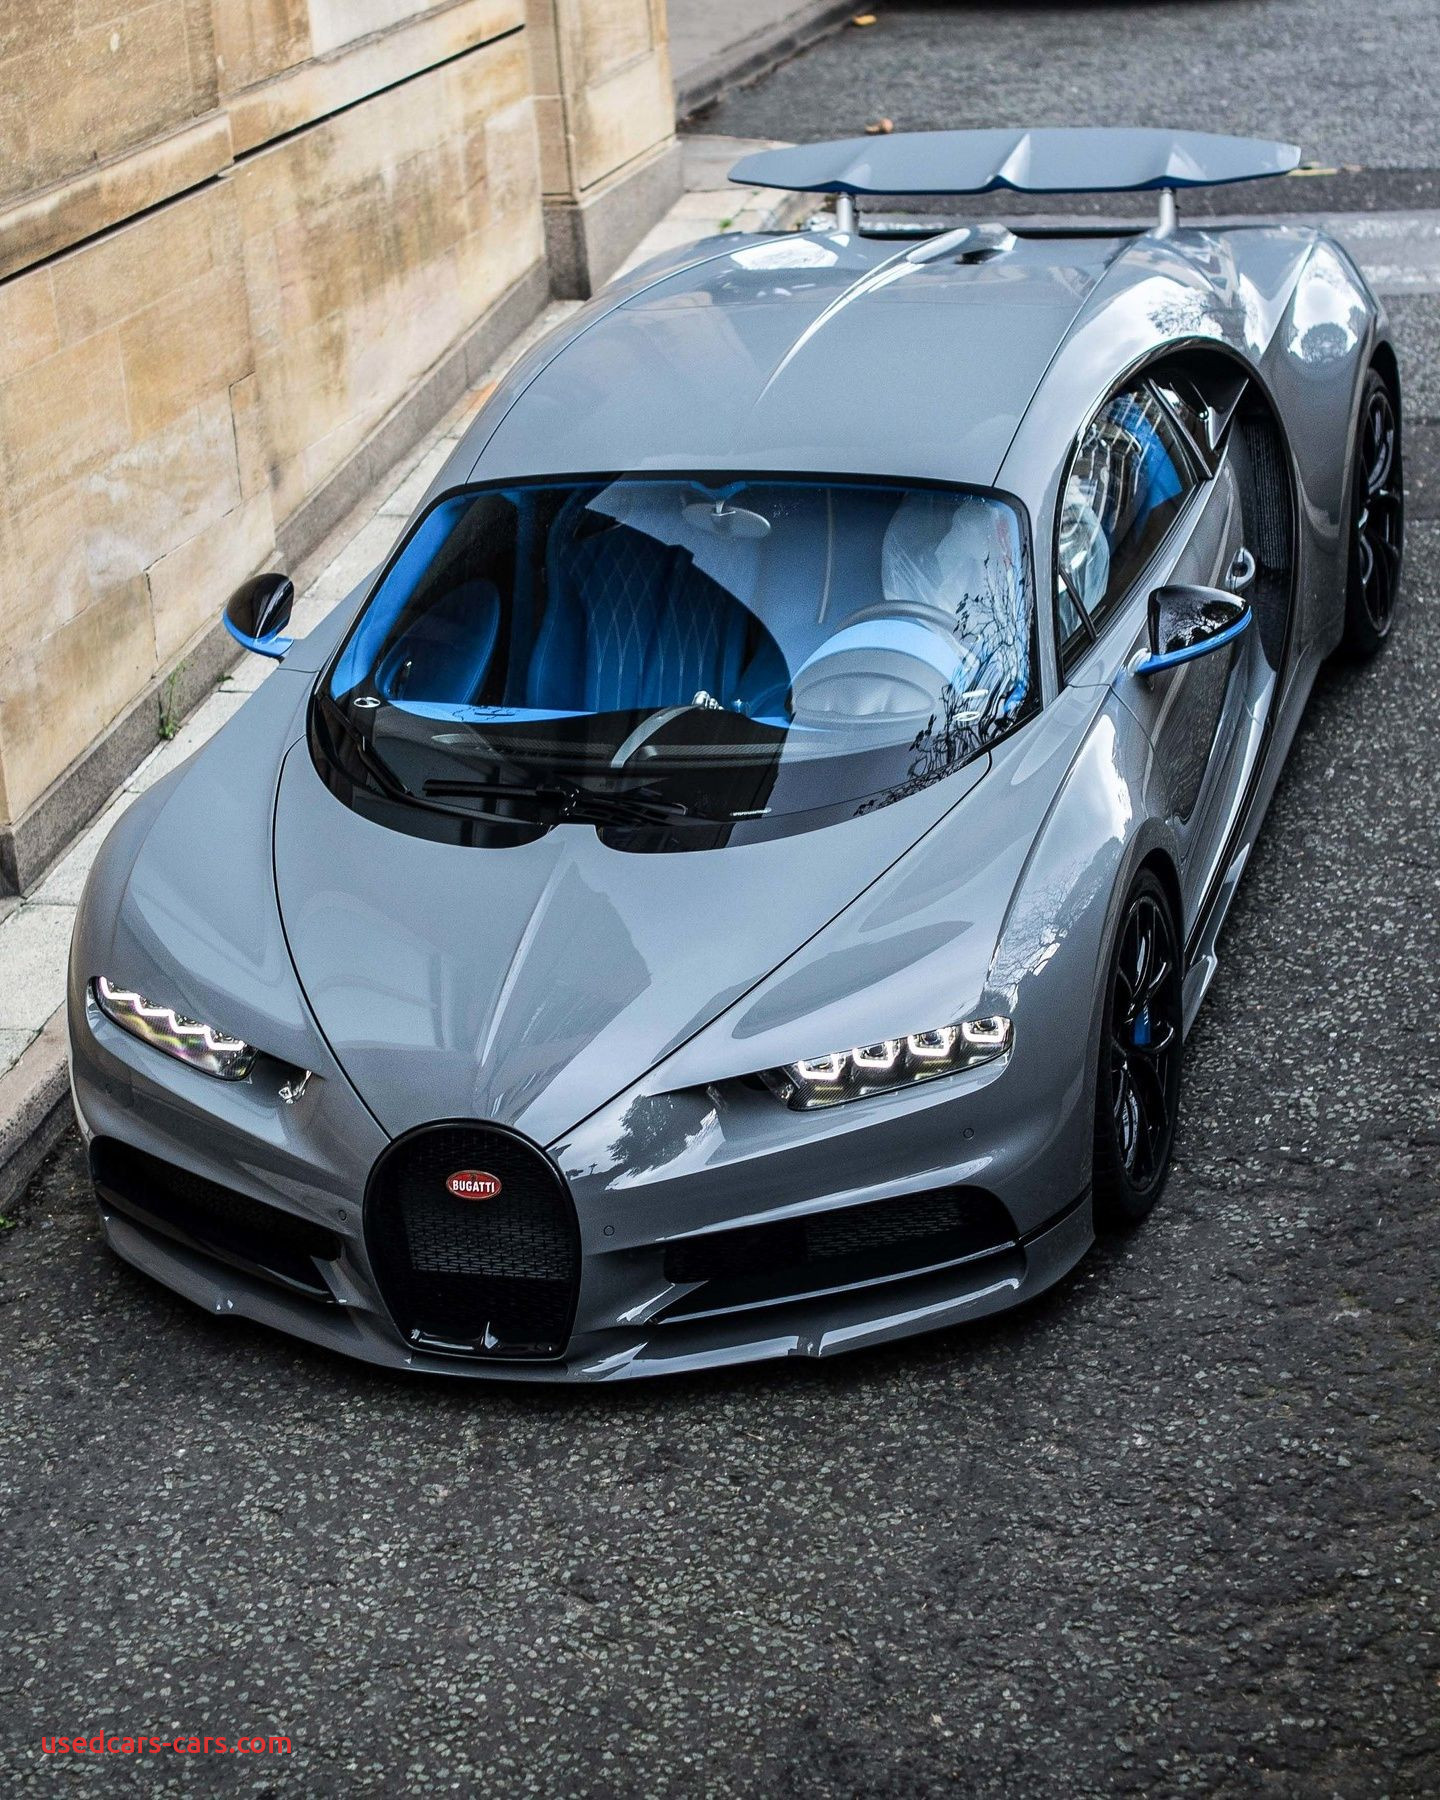 Used Sports Cars Near Me Luxury Bugatti Chiron is the Fastest and Most Powerful Super Sports